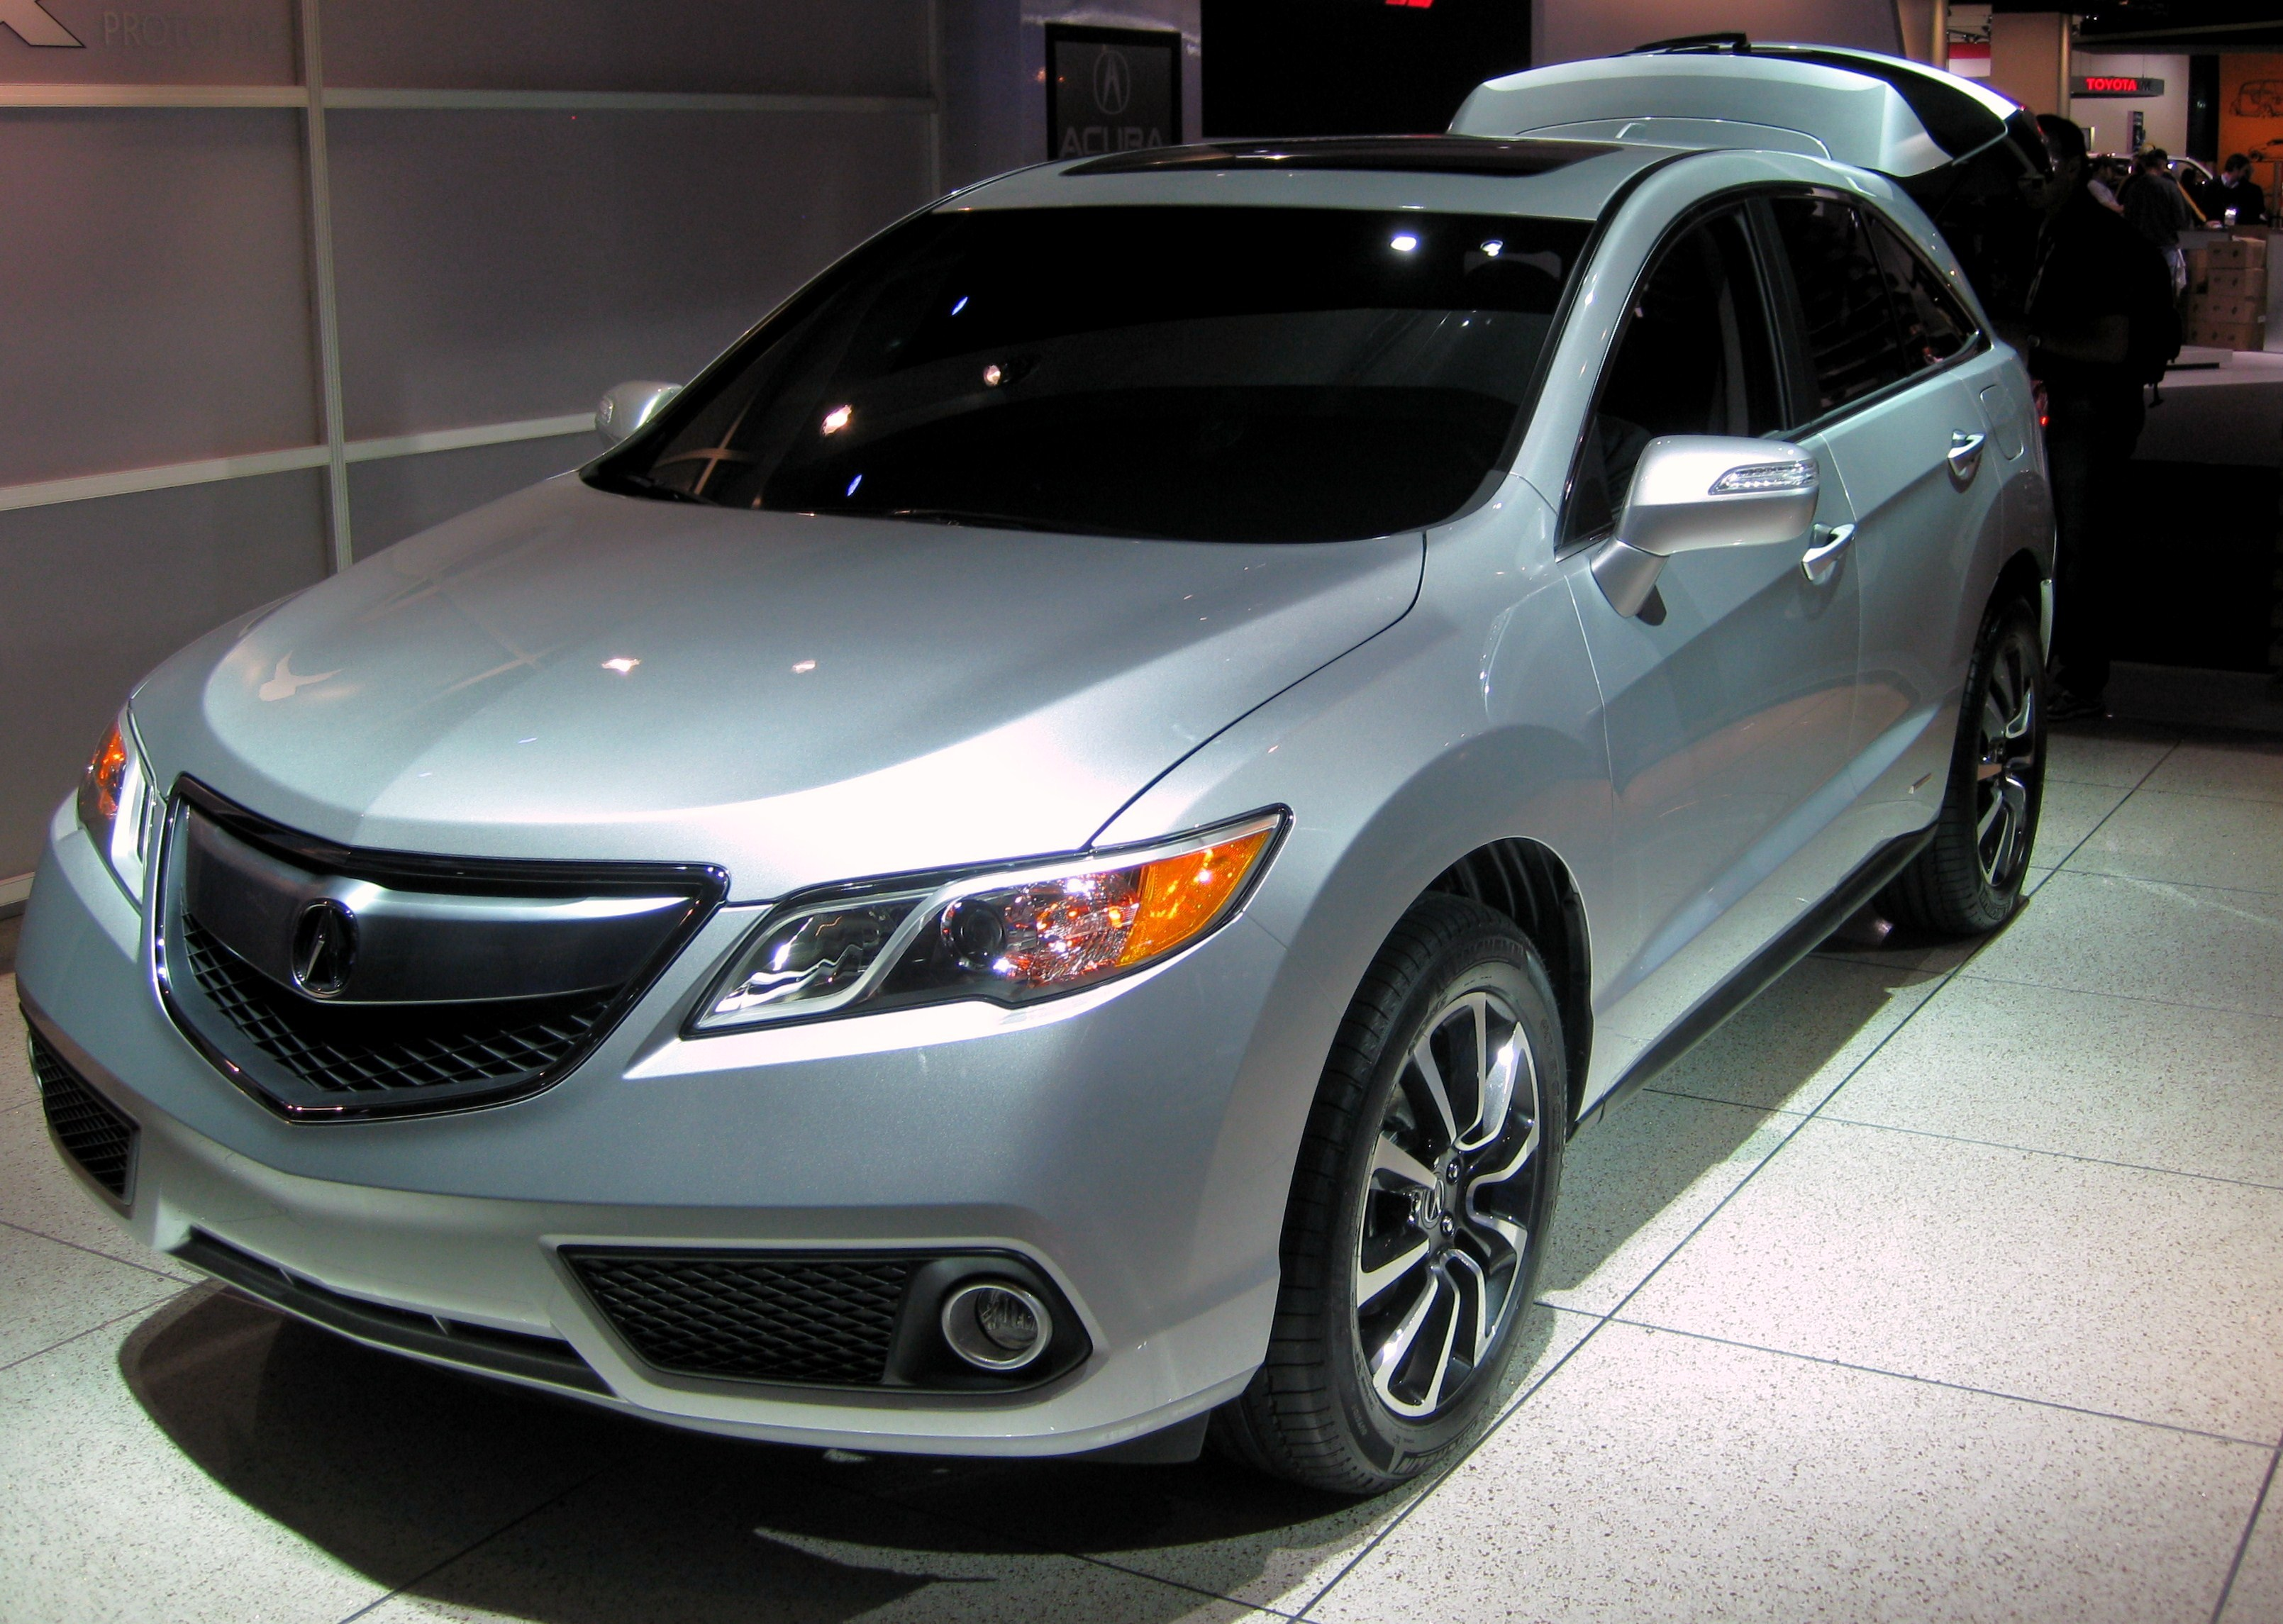 used 2007 acura rdx for sale pricing features edmunds autos post. Black Bedroom Furniture Sets. Home Design Ideas